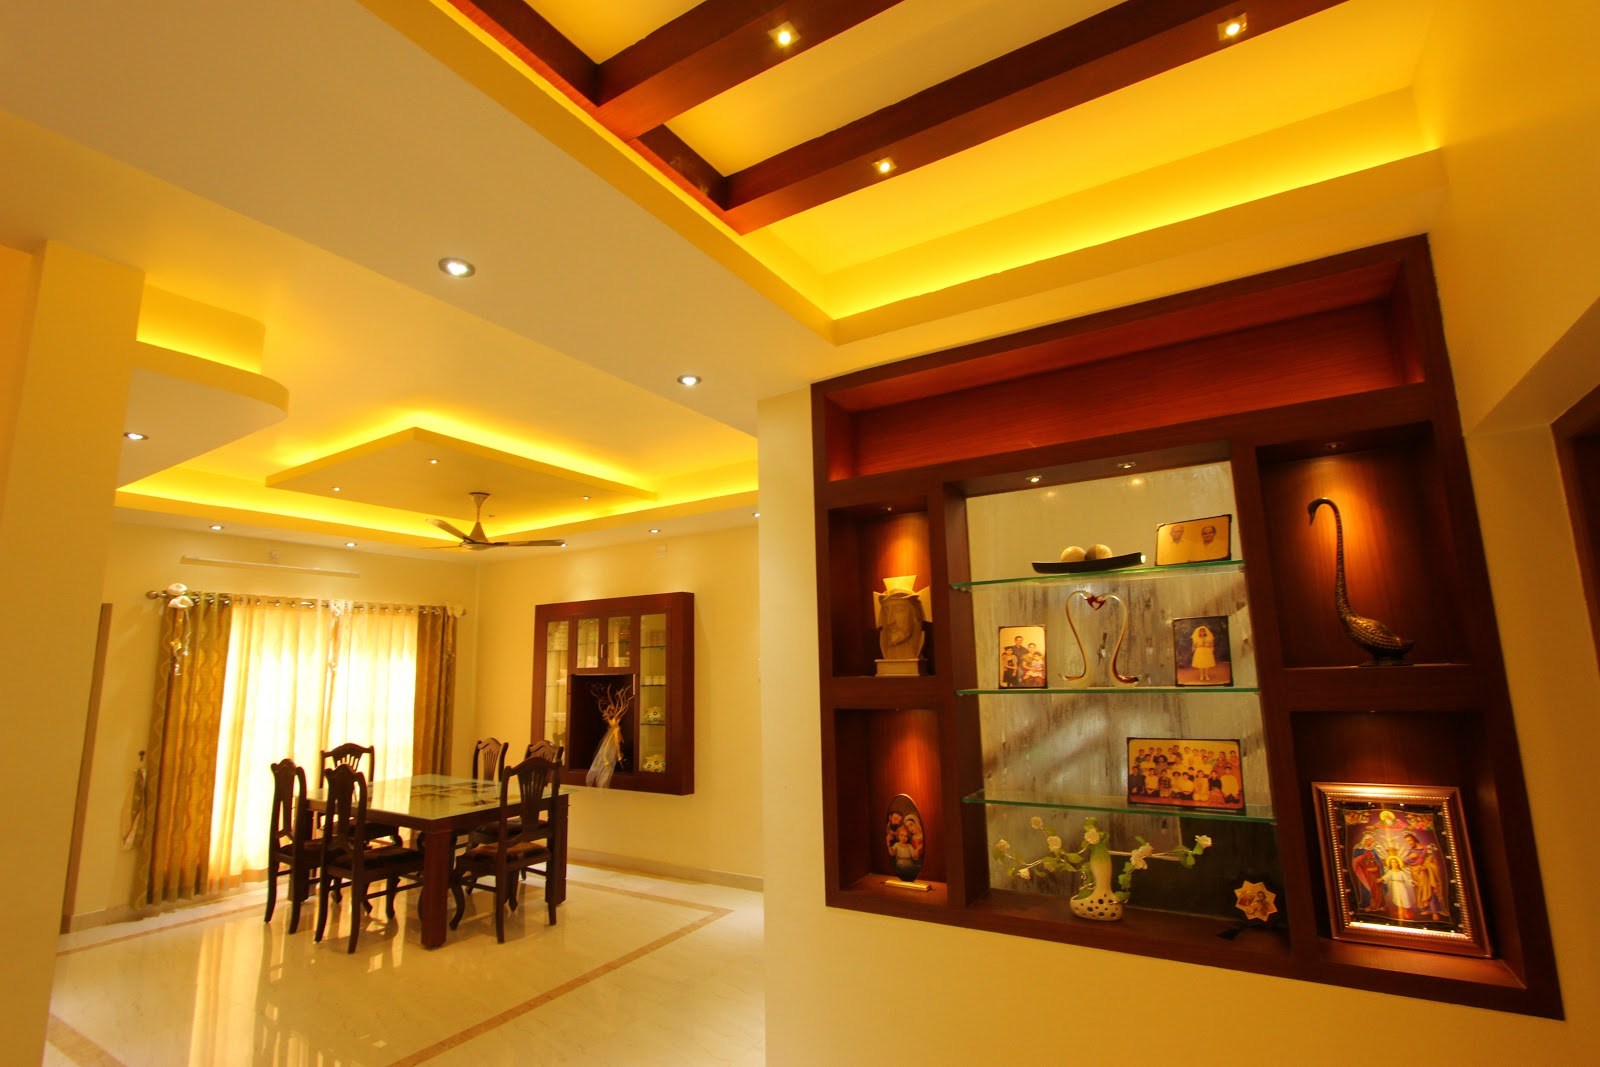 Shilpakala interiors award winning home interior design for Interior design company